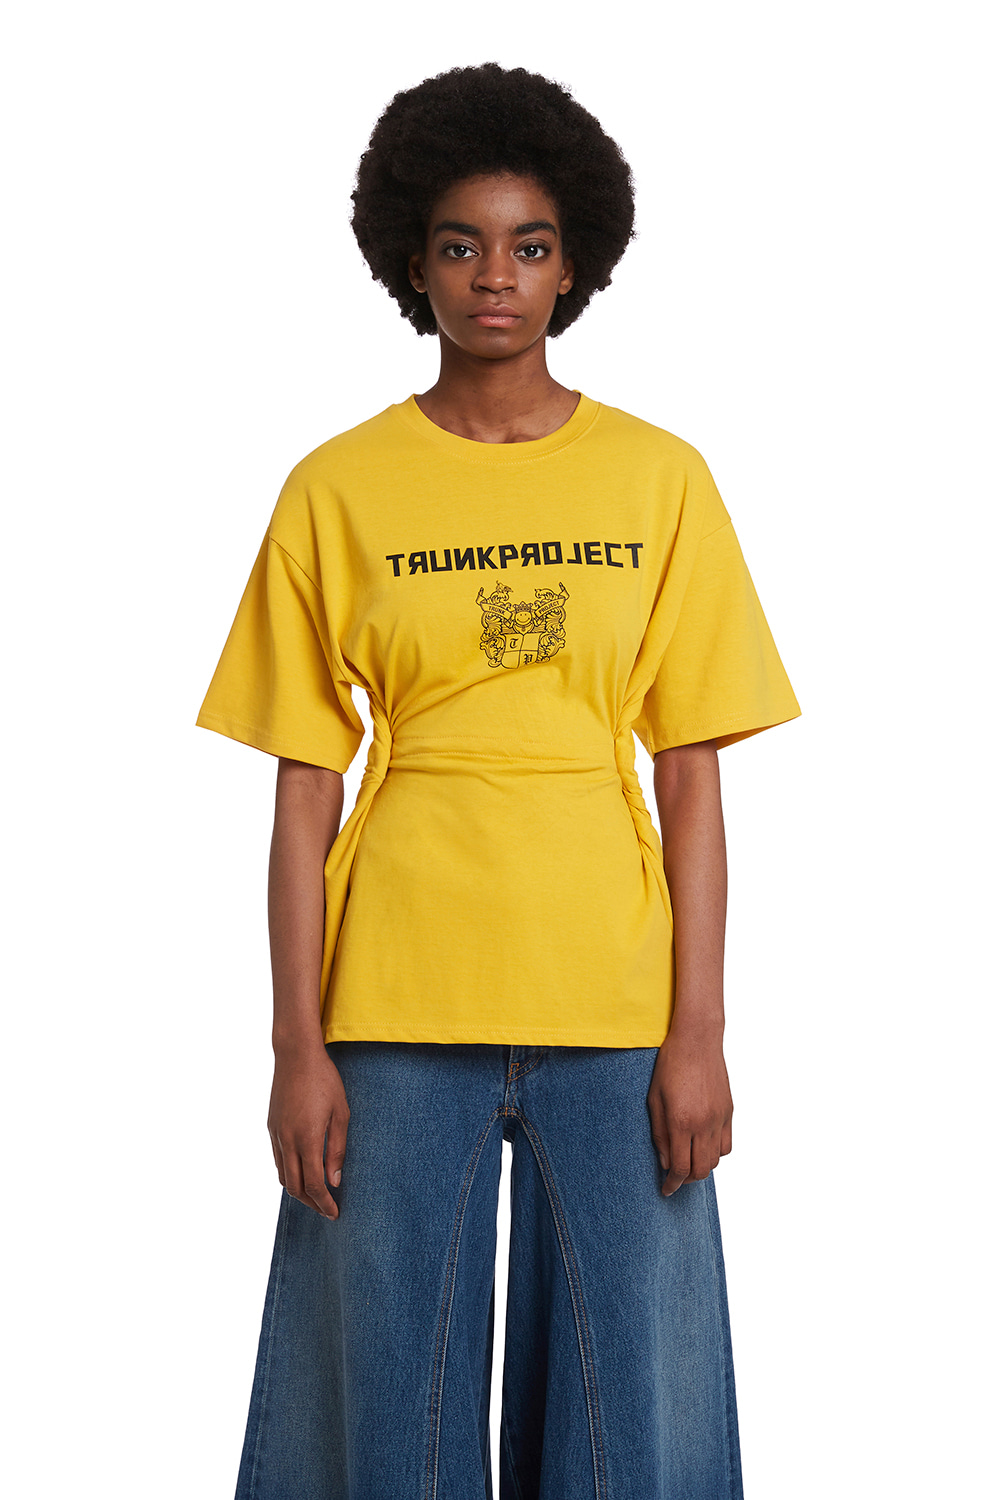 Wired T Shirts